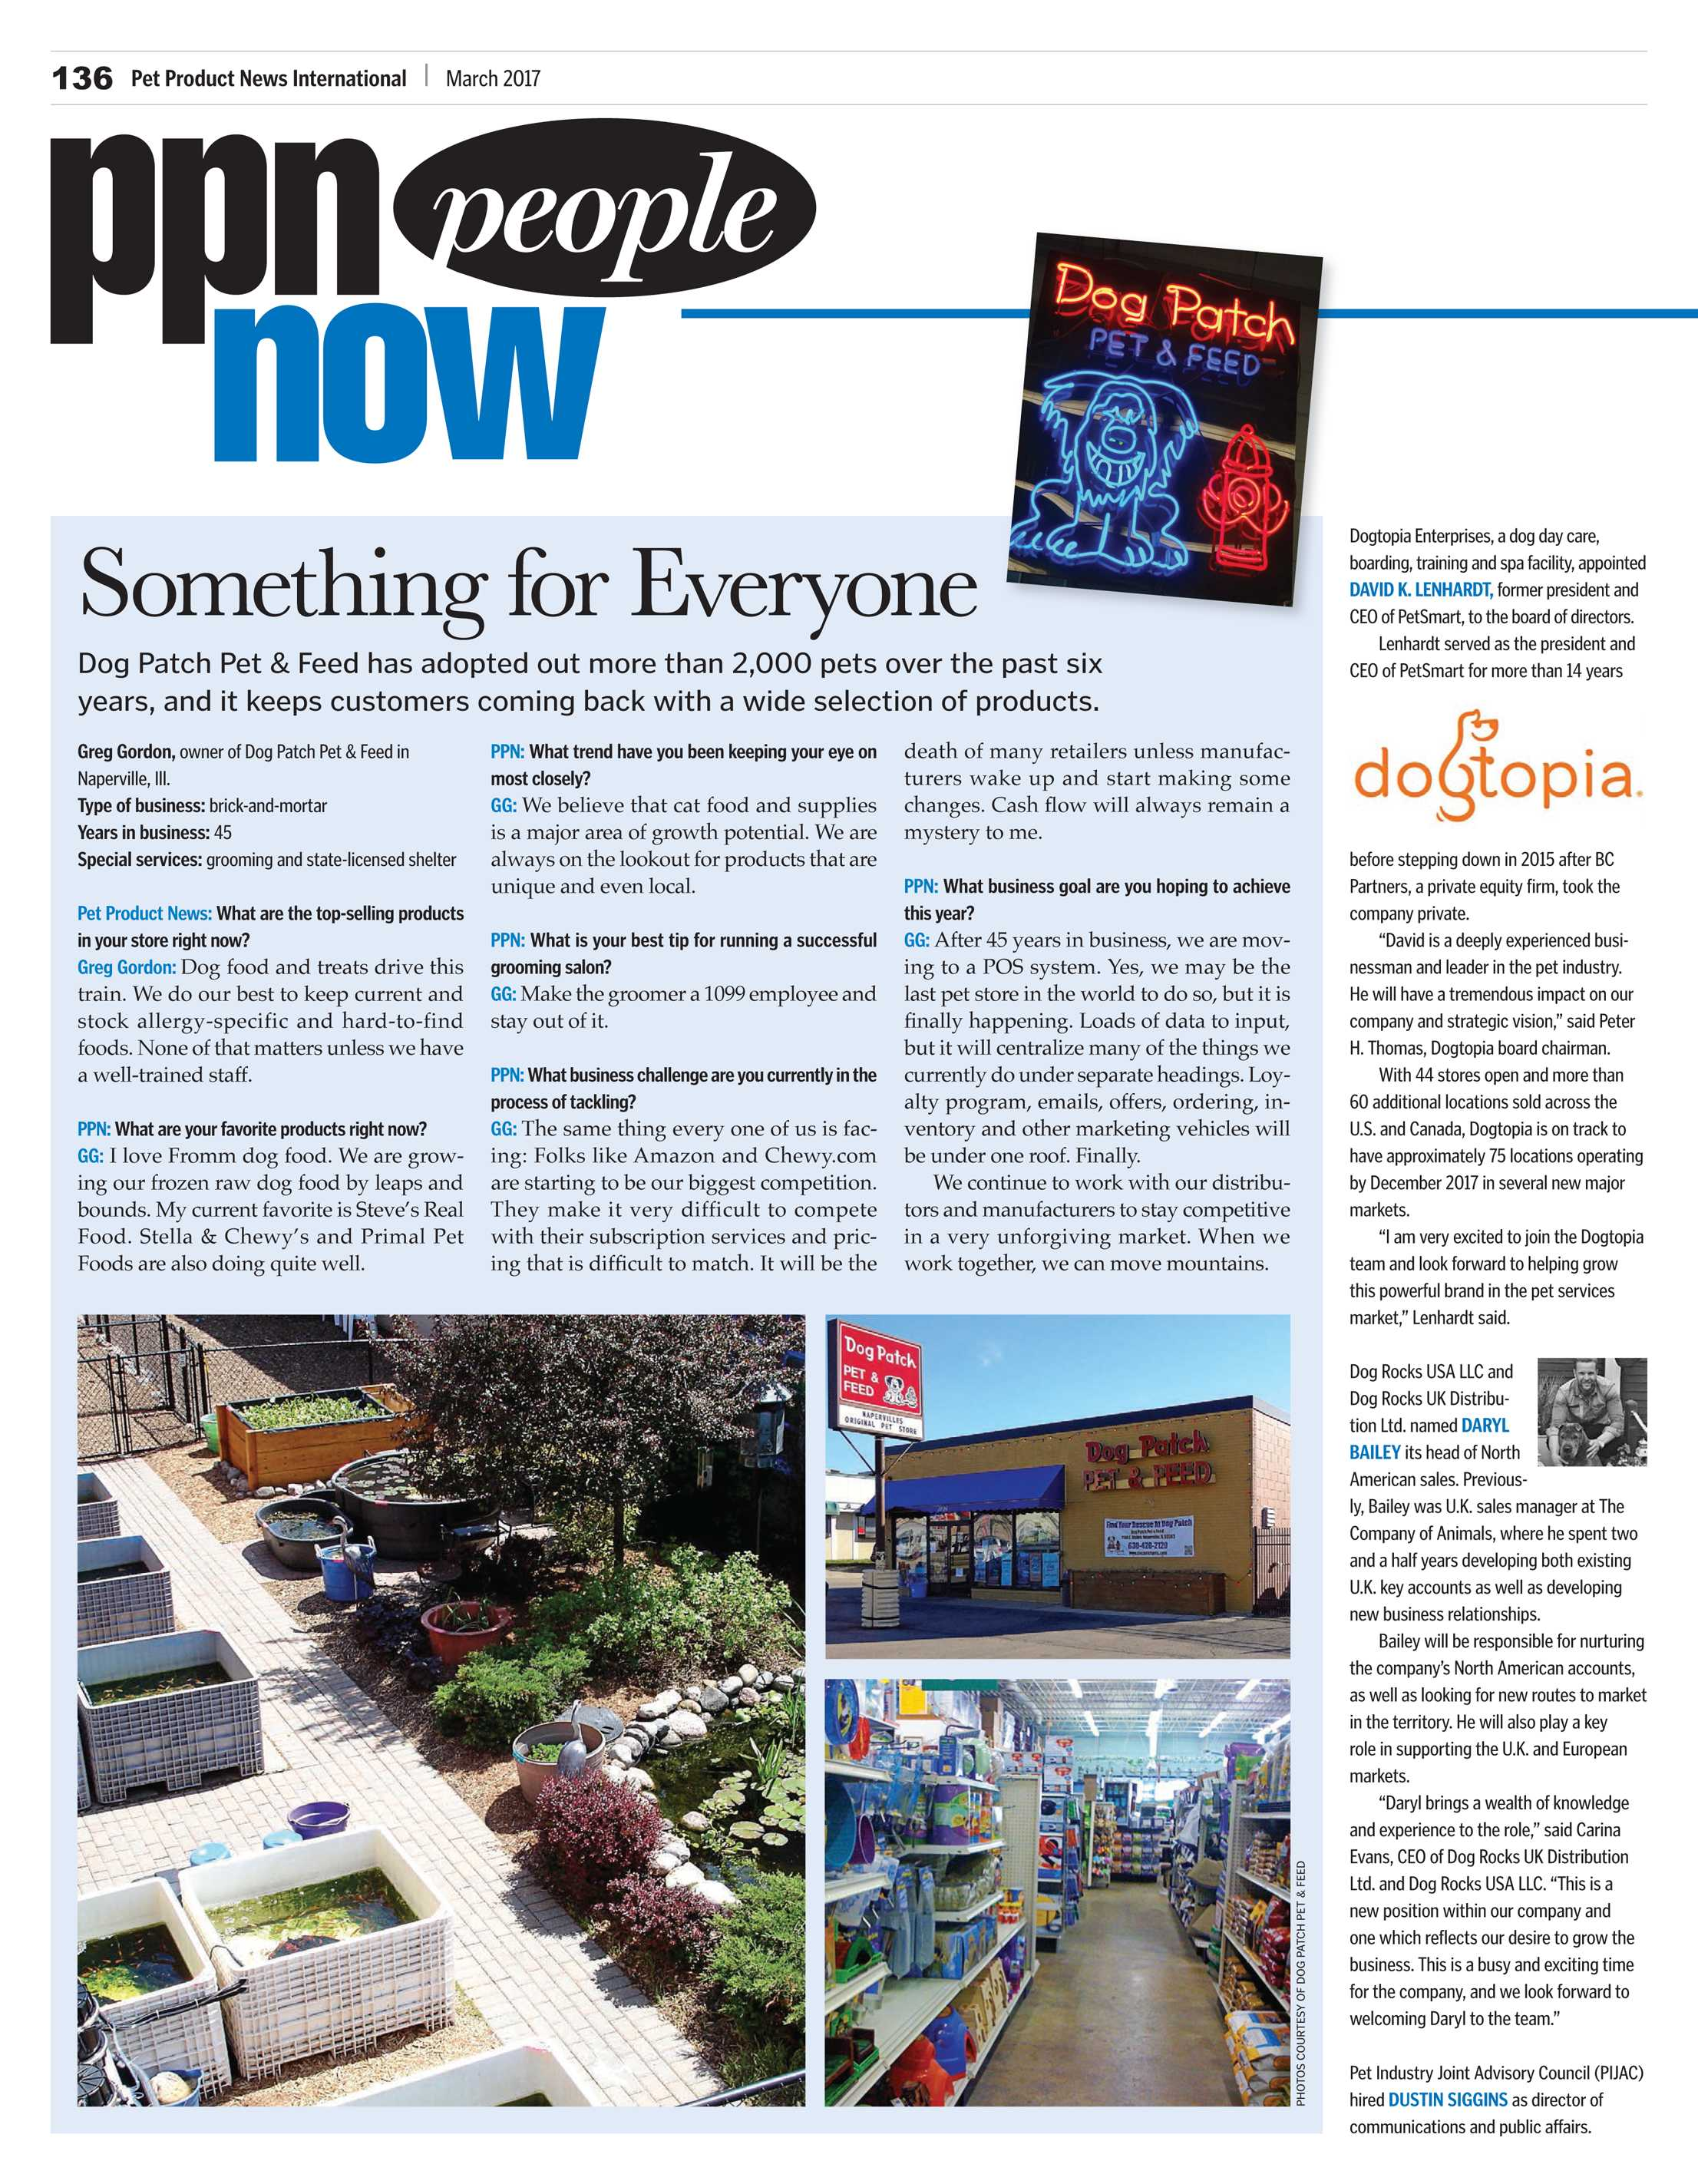 Pet Product News - March 2017 - page 136